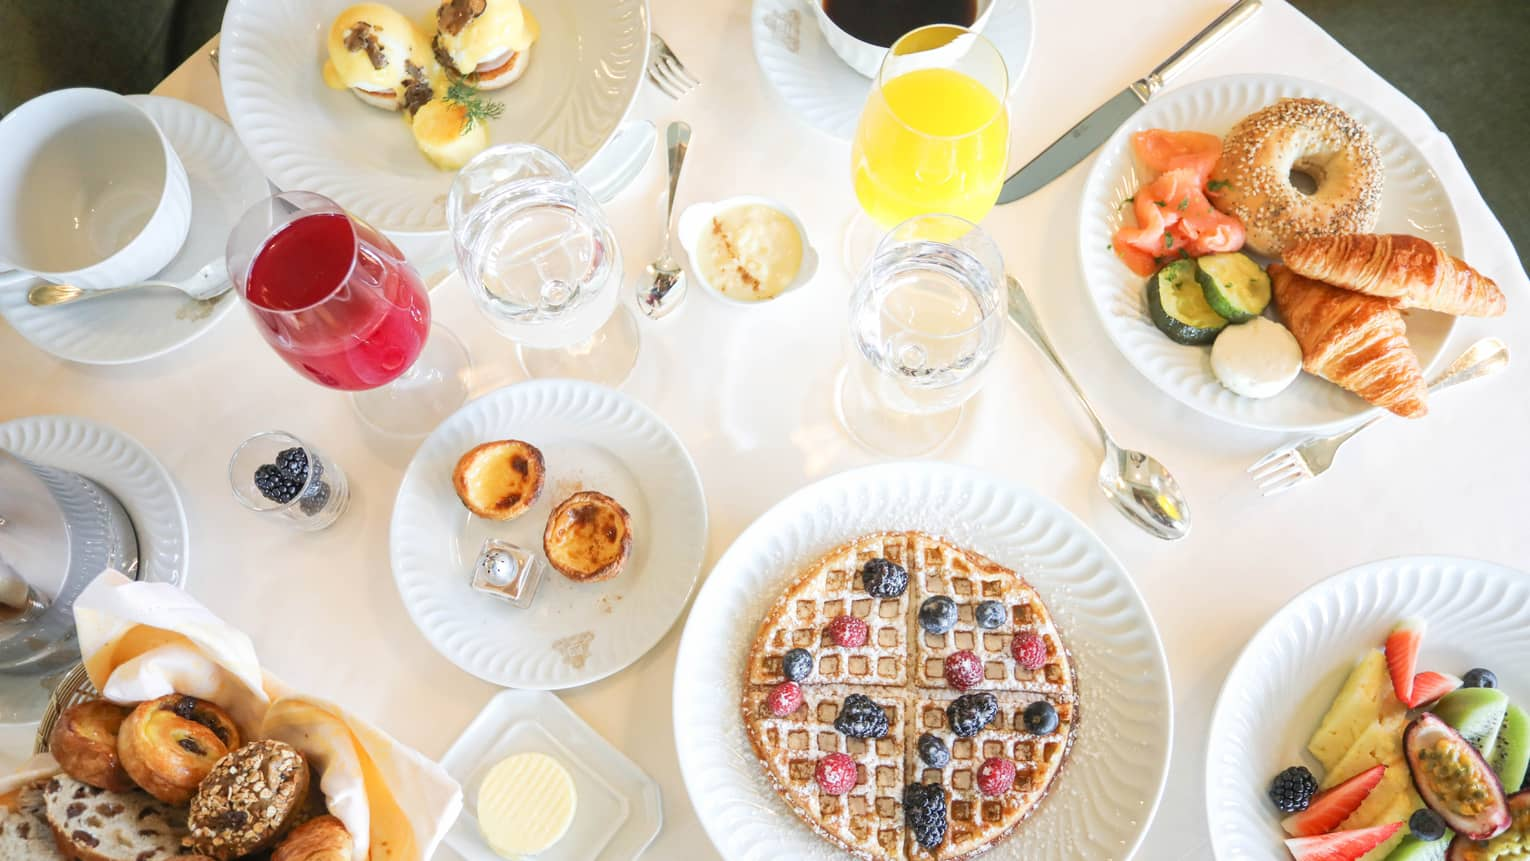 Aerial view of breakfast table with waffles, fresh fruit, pastries and juice in wine glasses